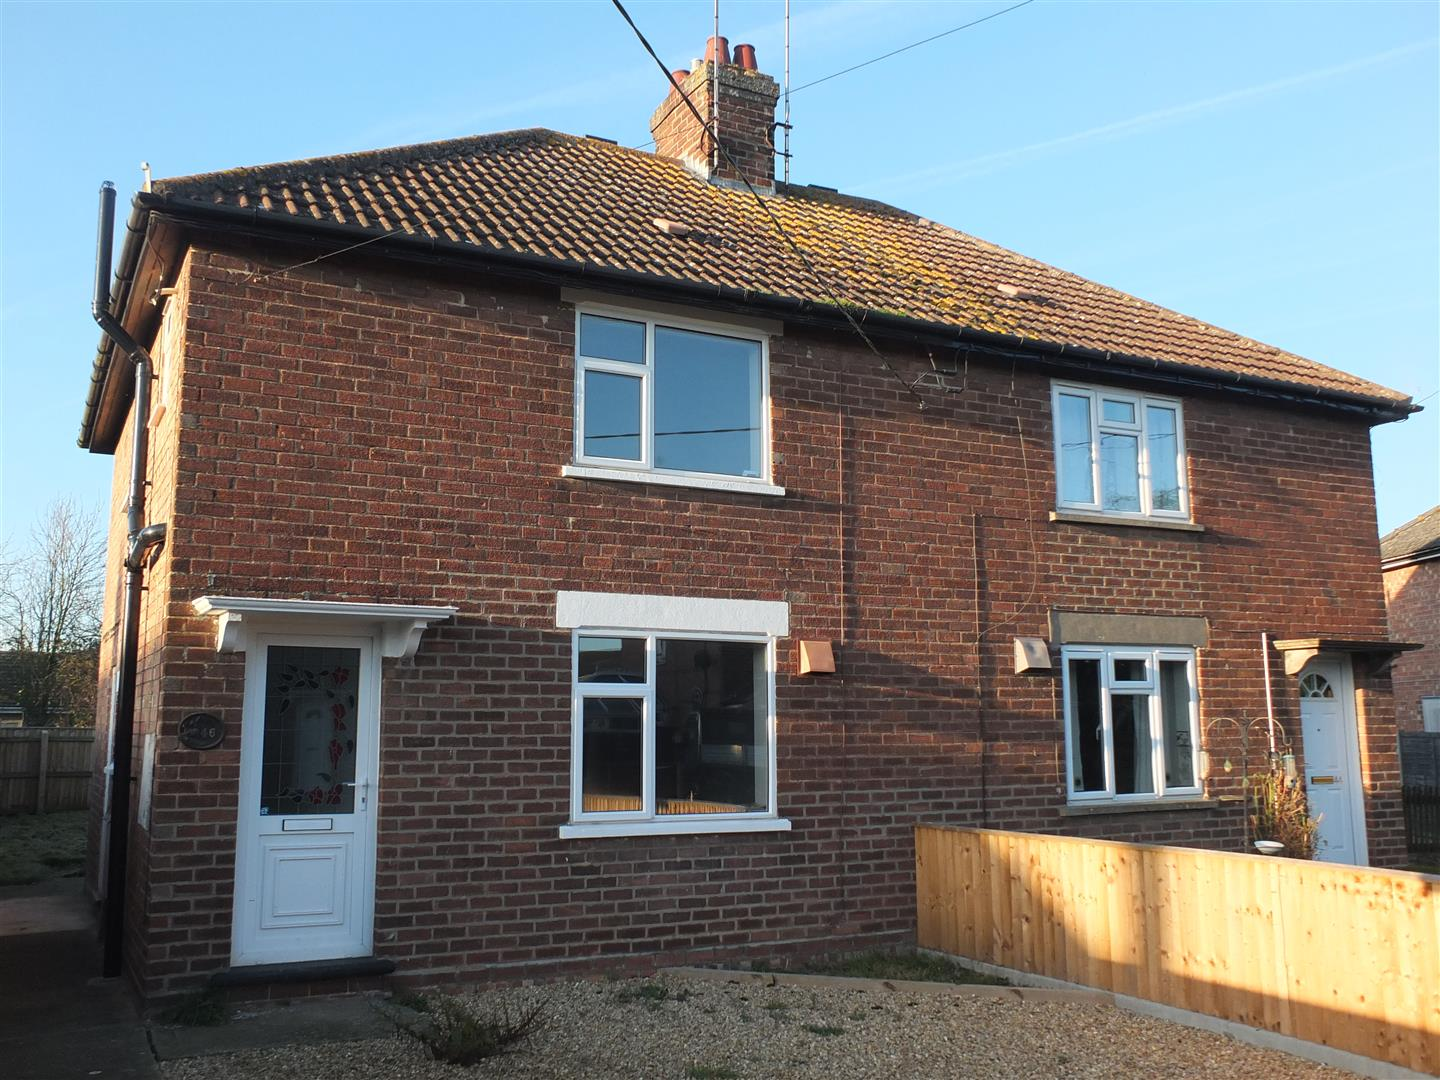 3 bed semi-detached house to rent in Long Sutton Spalding, PE12 9BT  - Property Image 1